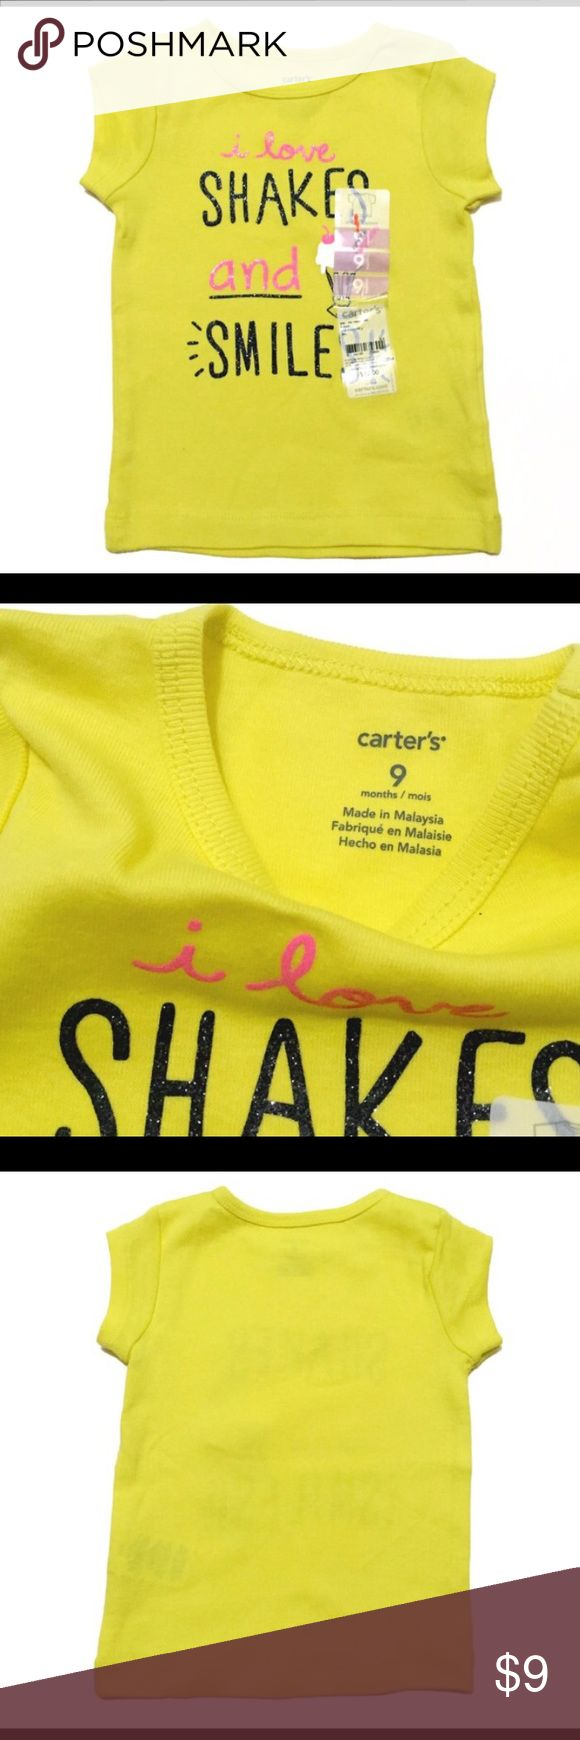 NWT Shakes & Smiles Top New with tag Carters yellow short sleeved top with I love shakes and smiles, size 9 months. Carter's Shirts & Tops Tees - Short Sleeve